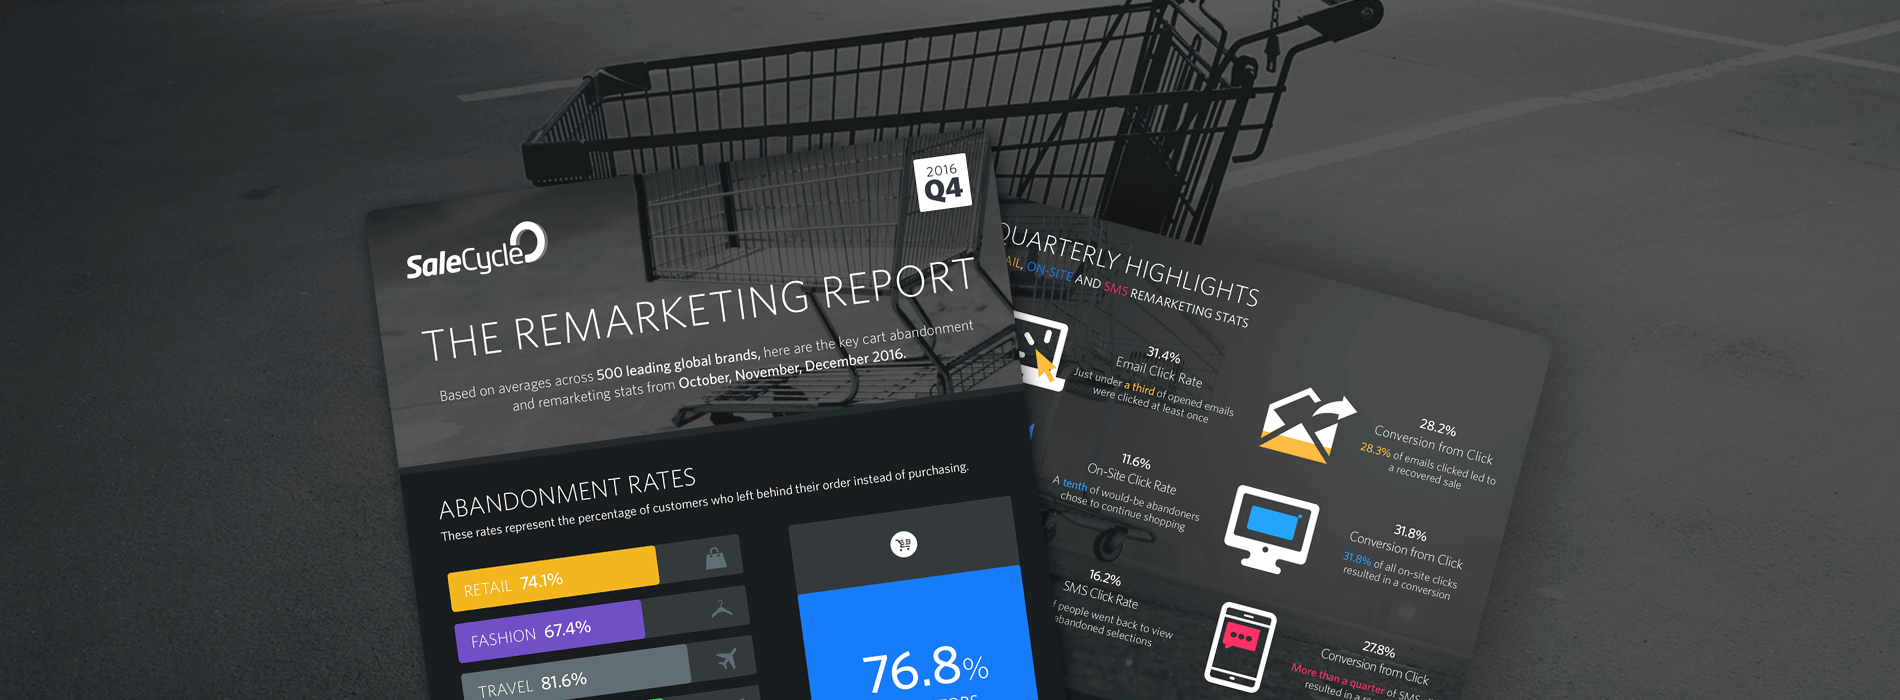 [Infographic] The Remarketing Report – Q4 2016